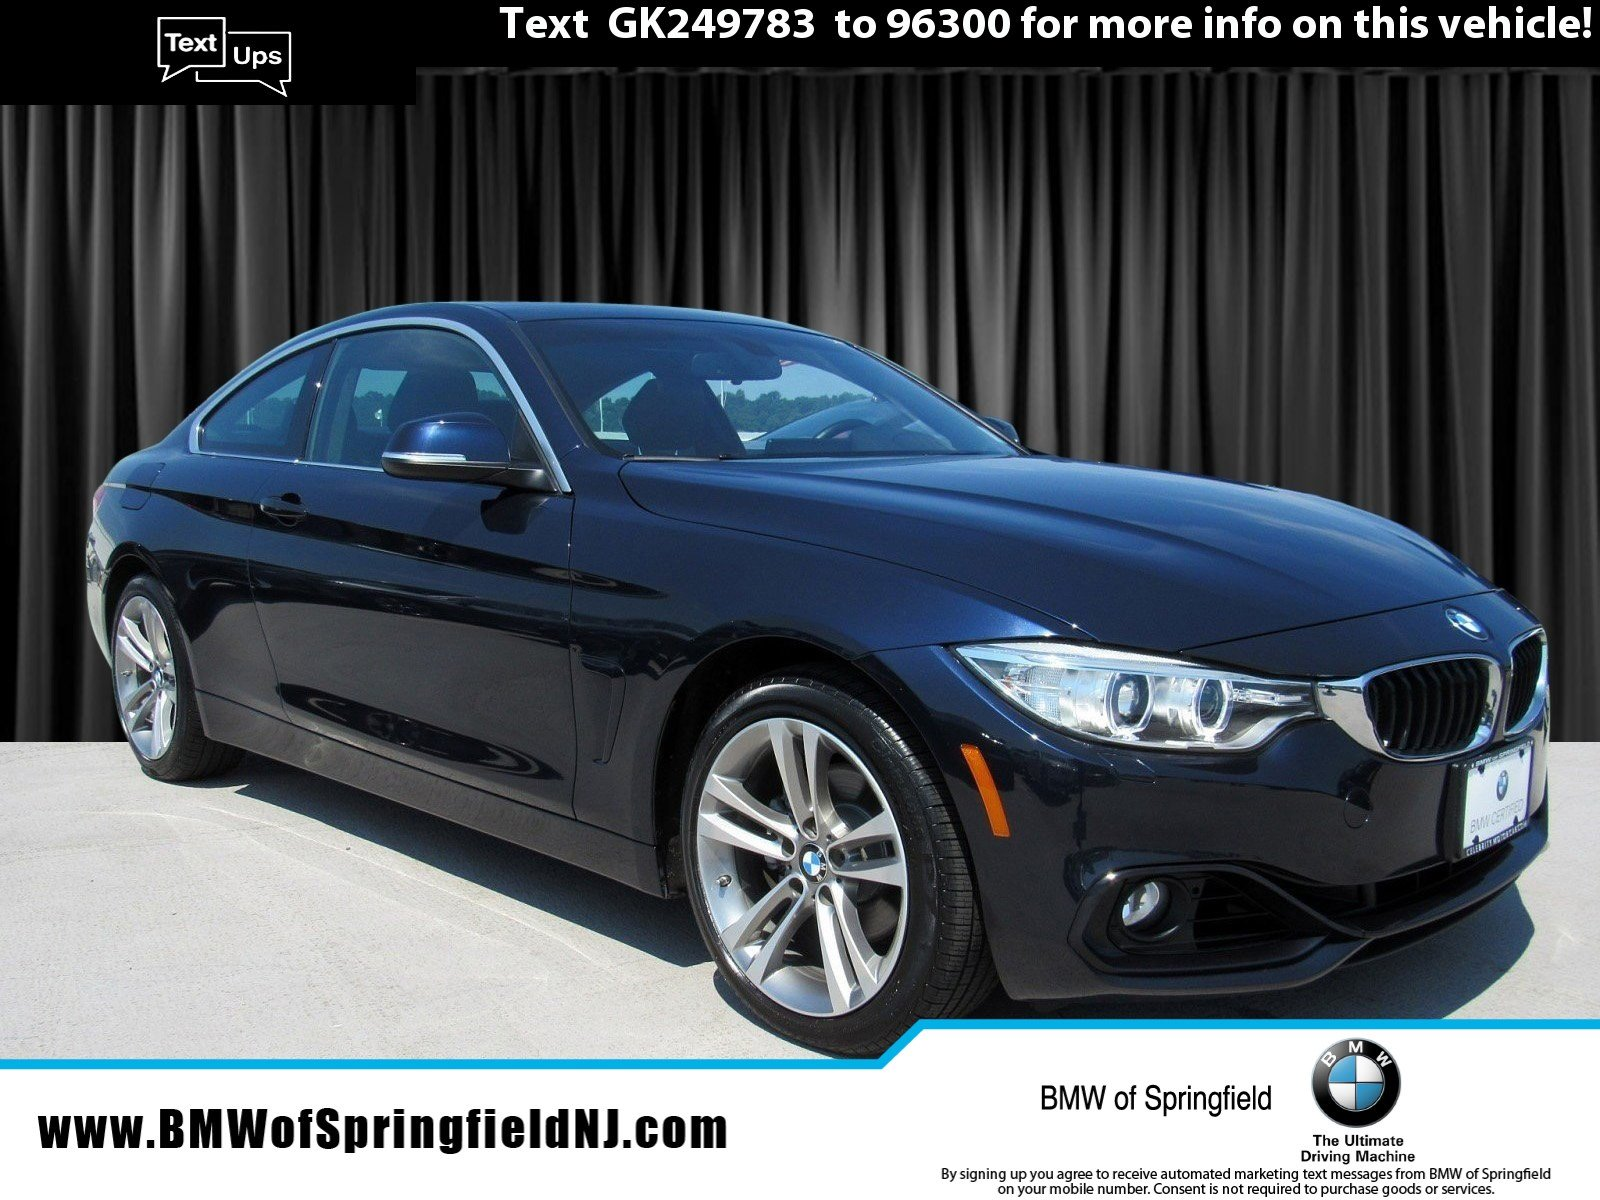 2016 BMW 428i xDRIVE - CERTIFIED PRE-OWNED